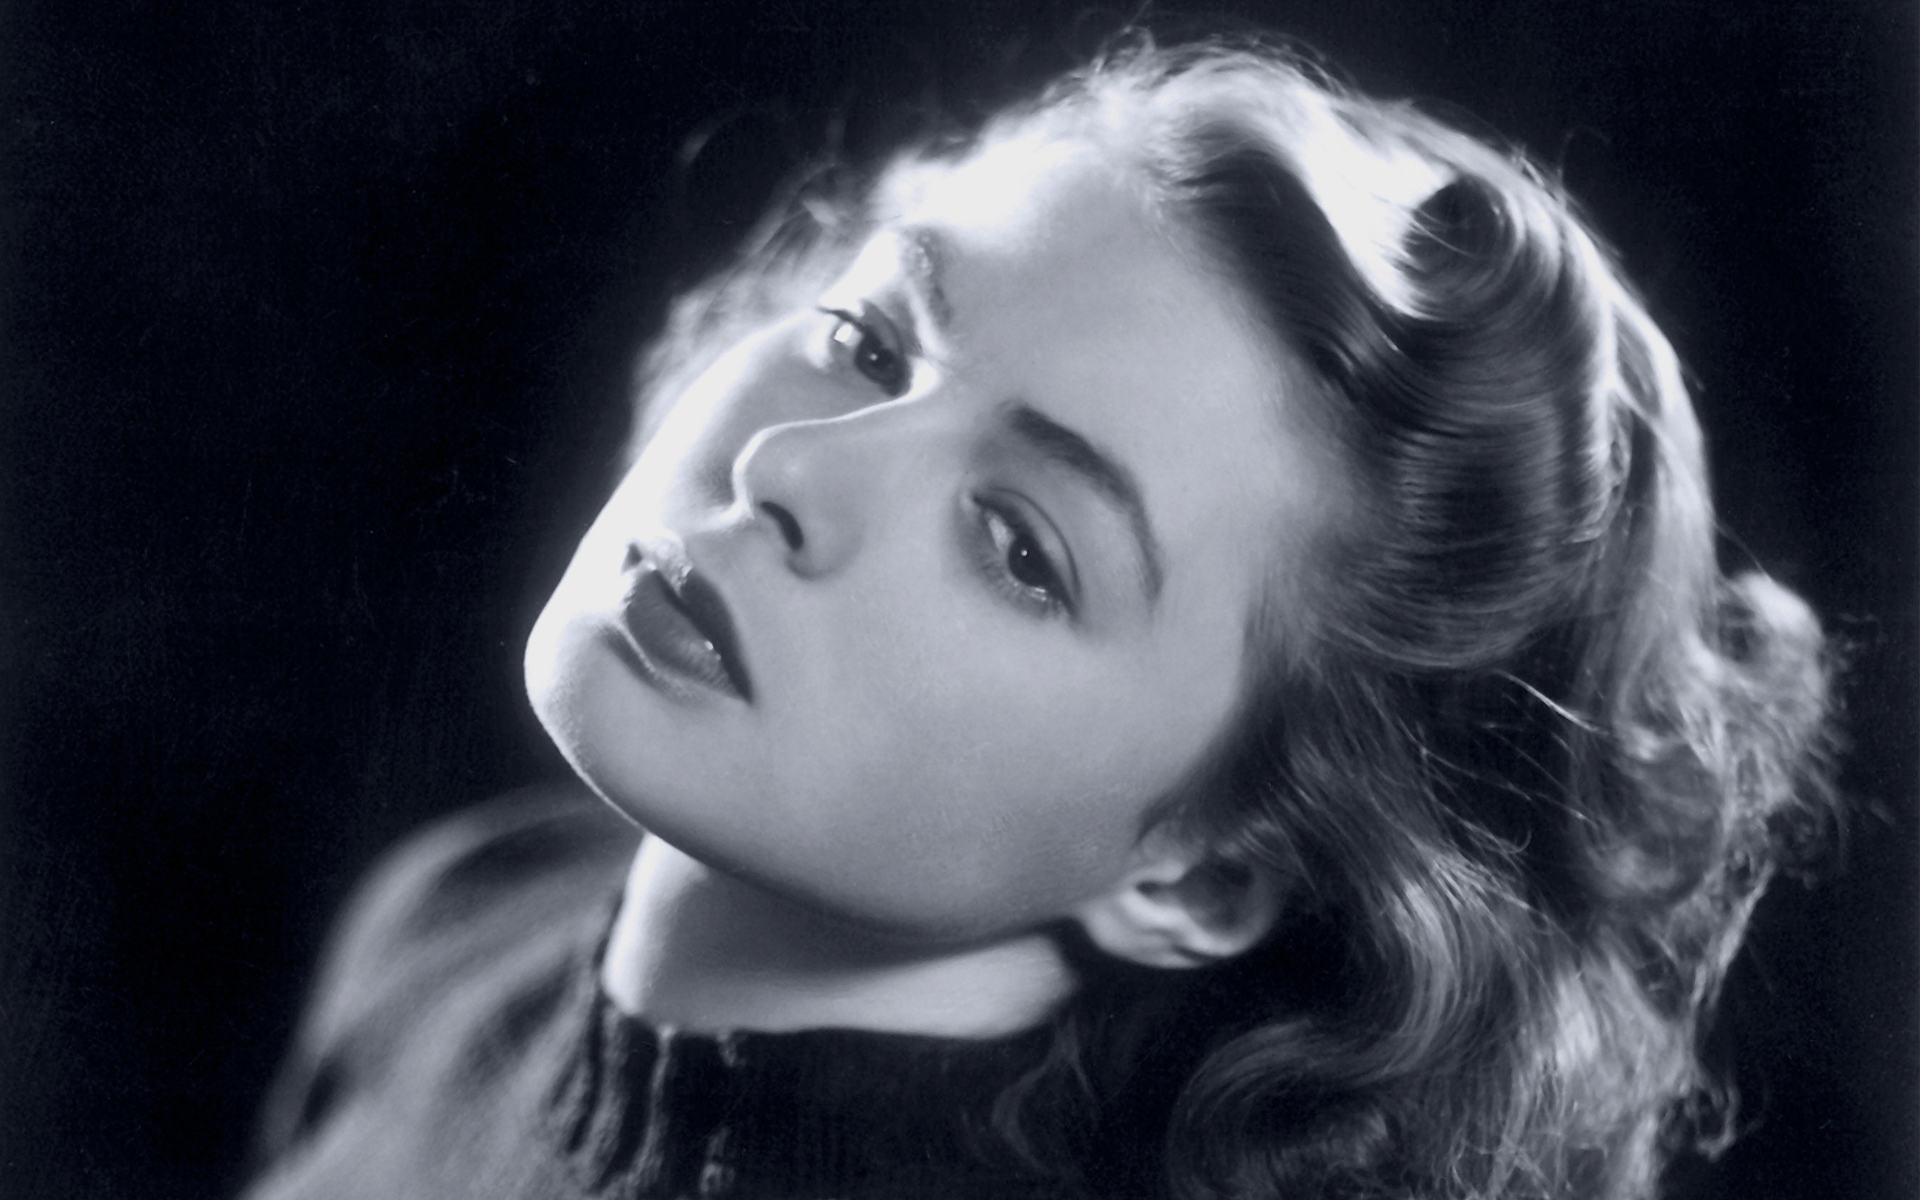 Ingrid Bergman Wallpaper Widescreen HD Desktop Wallpapers 1920x1200